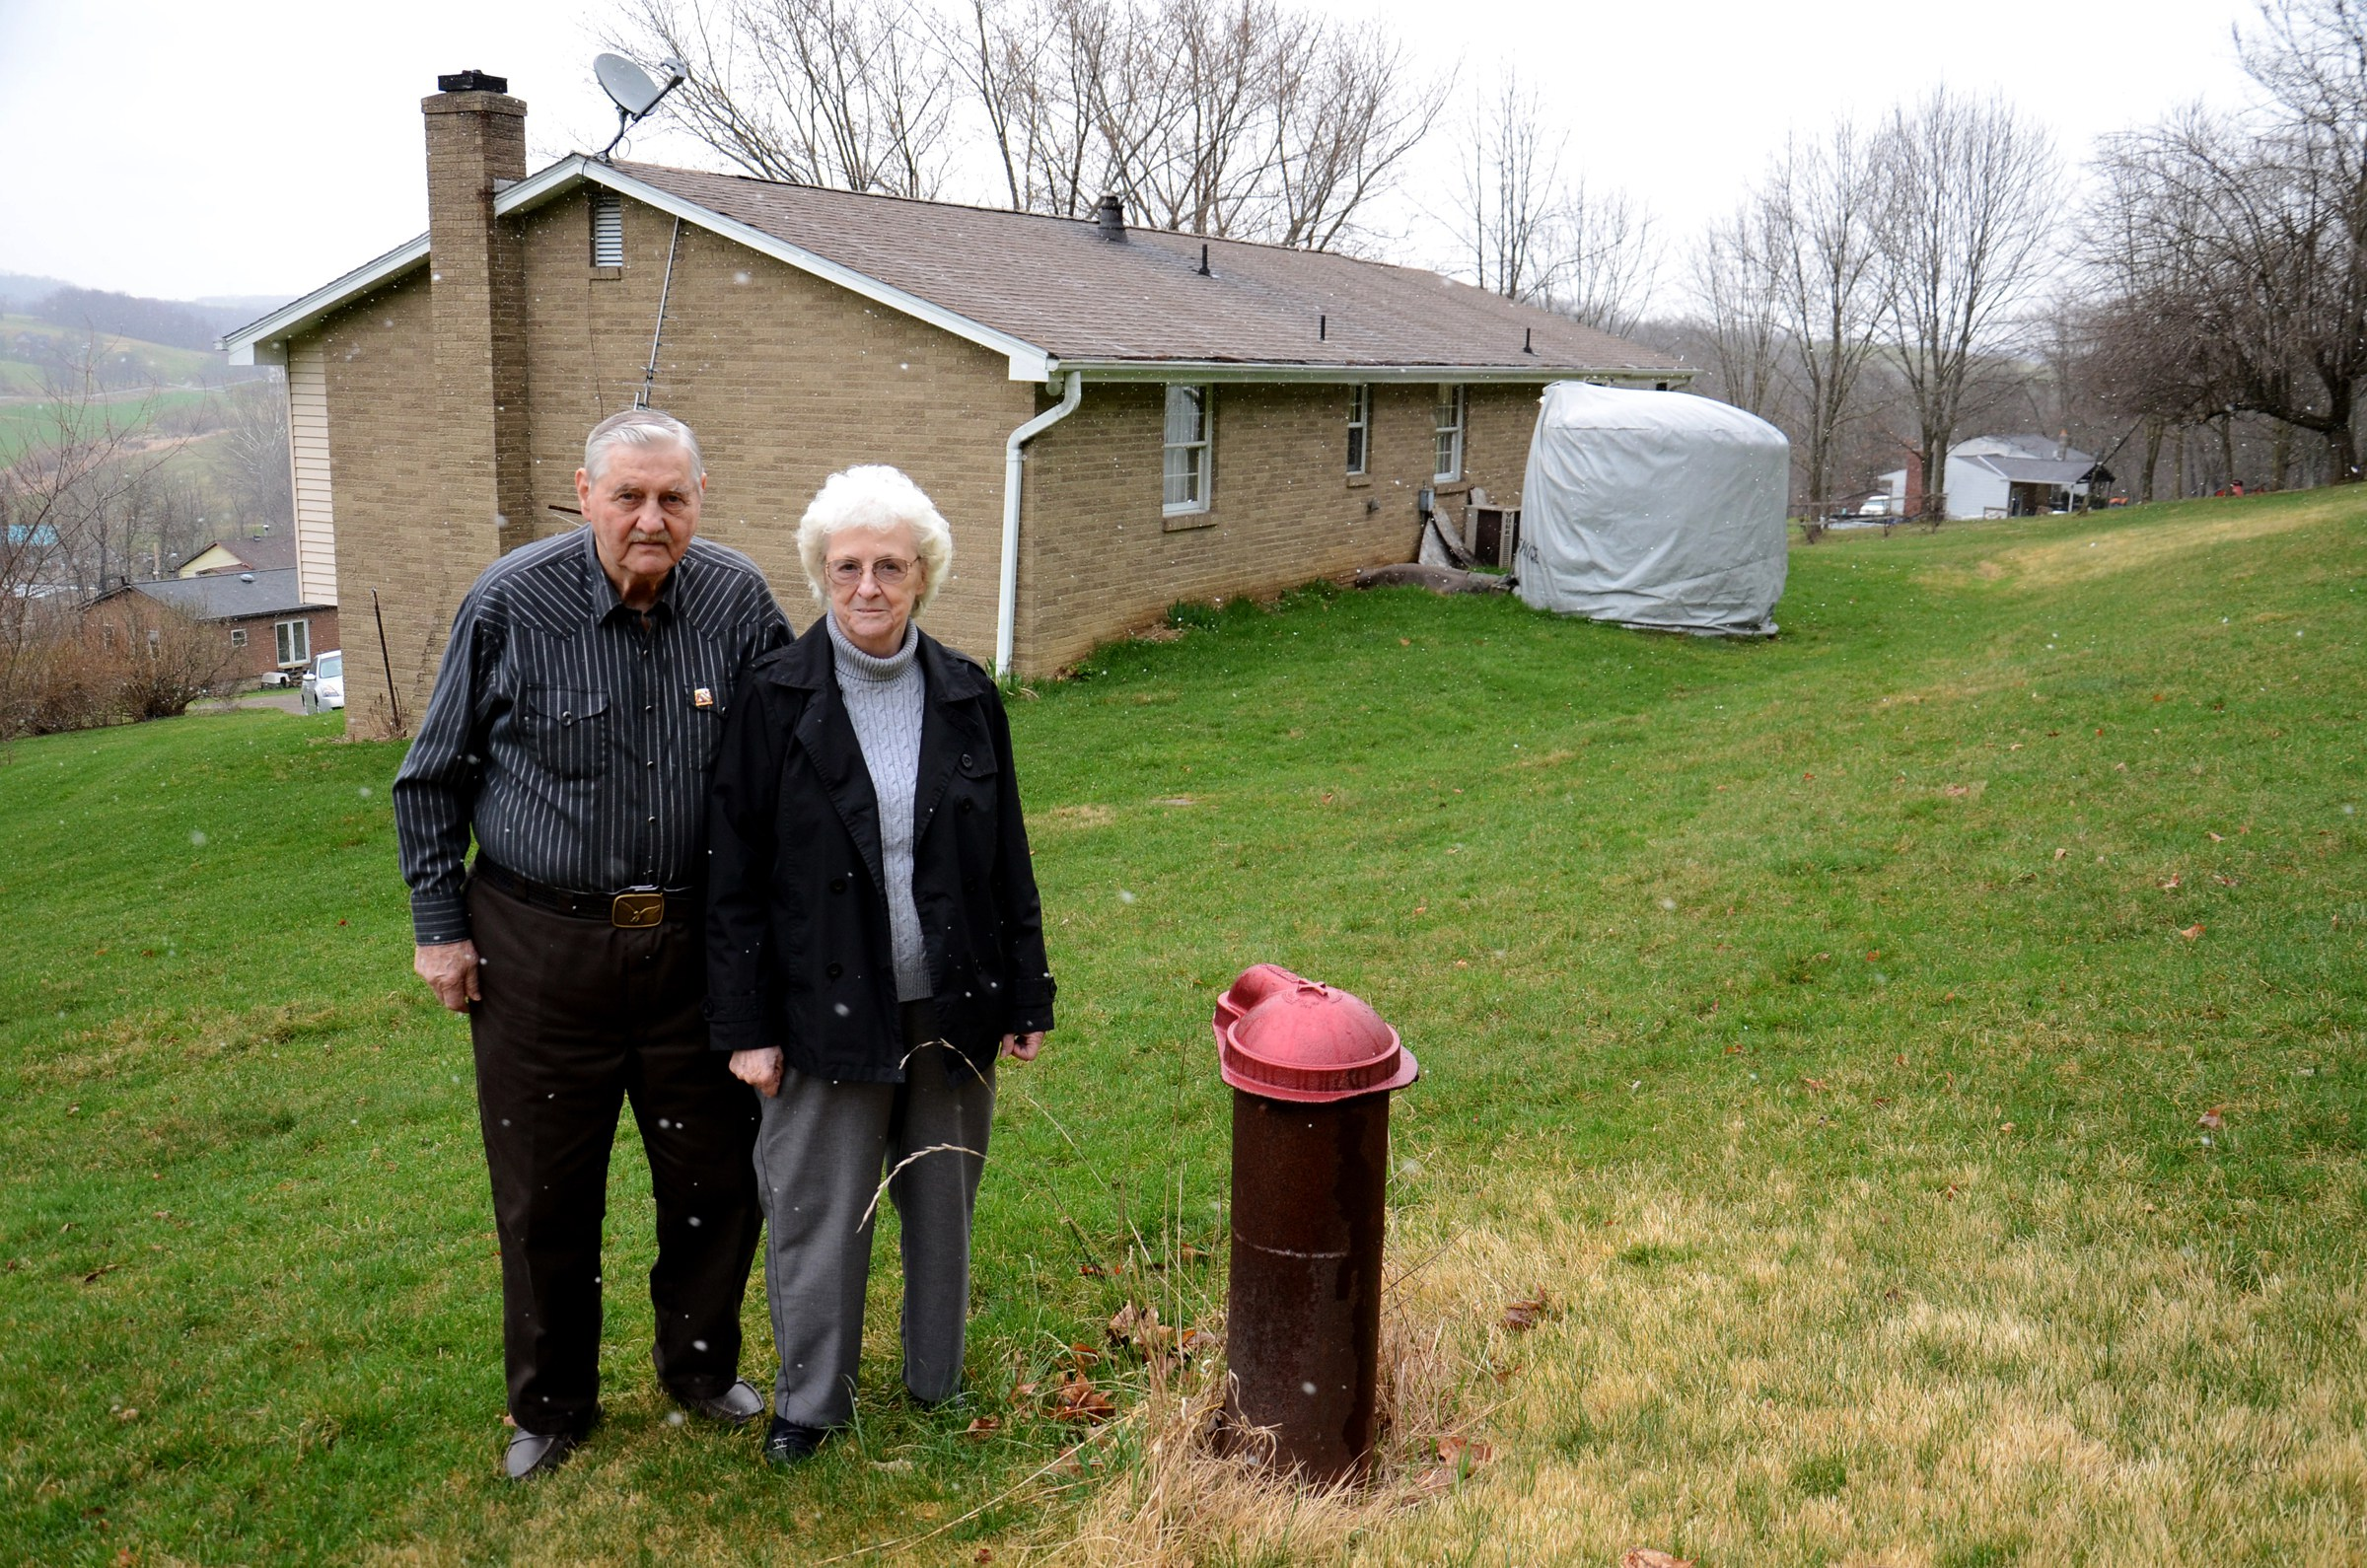 Jesse and Shirley Eakin stand by the water well they no longer use at their home in Avella, Pennsylvania. Delivered water is stored in the tank behind them. (Maryam Jameel / Center for Public Integrity)